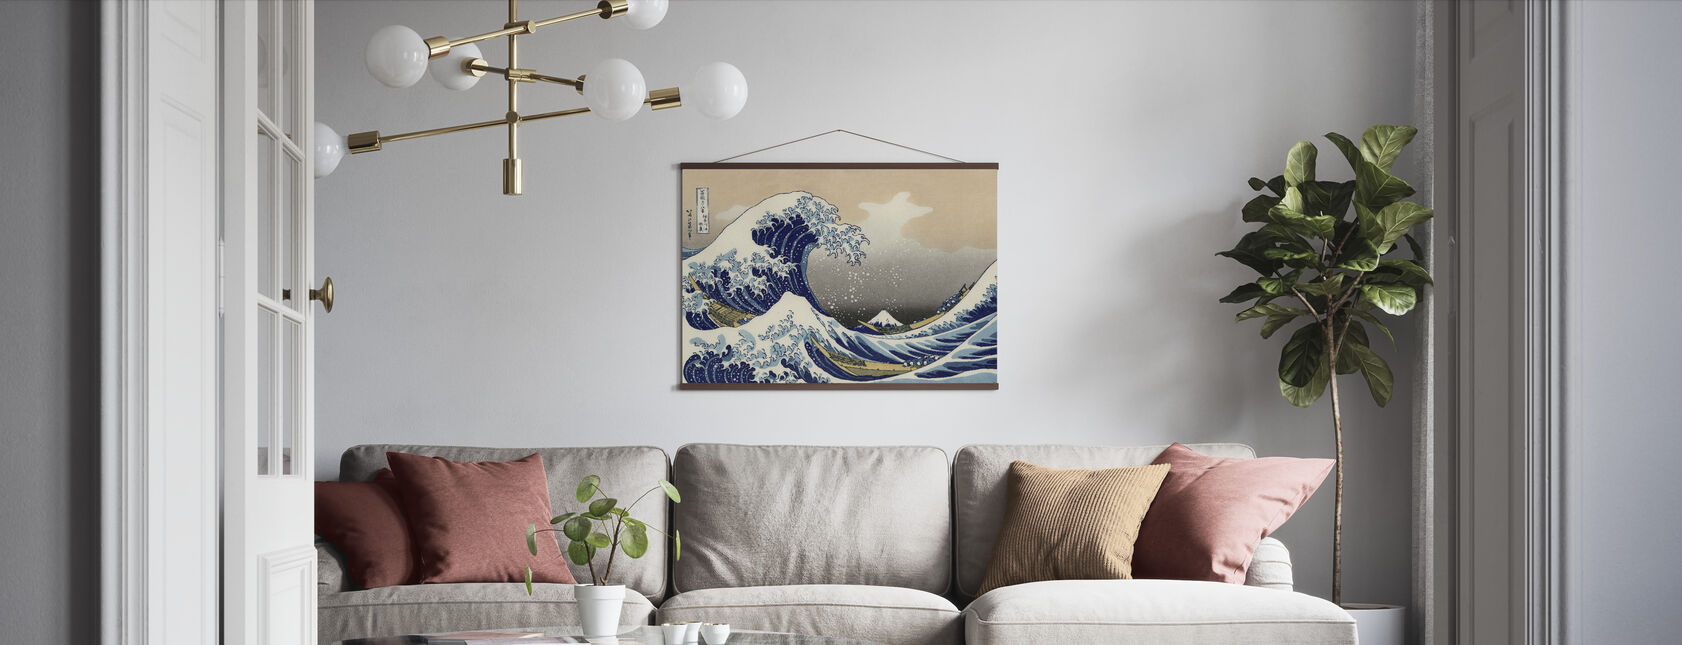 Great Wave, Katsushika Hokusai - Poster - Living Room